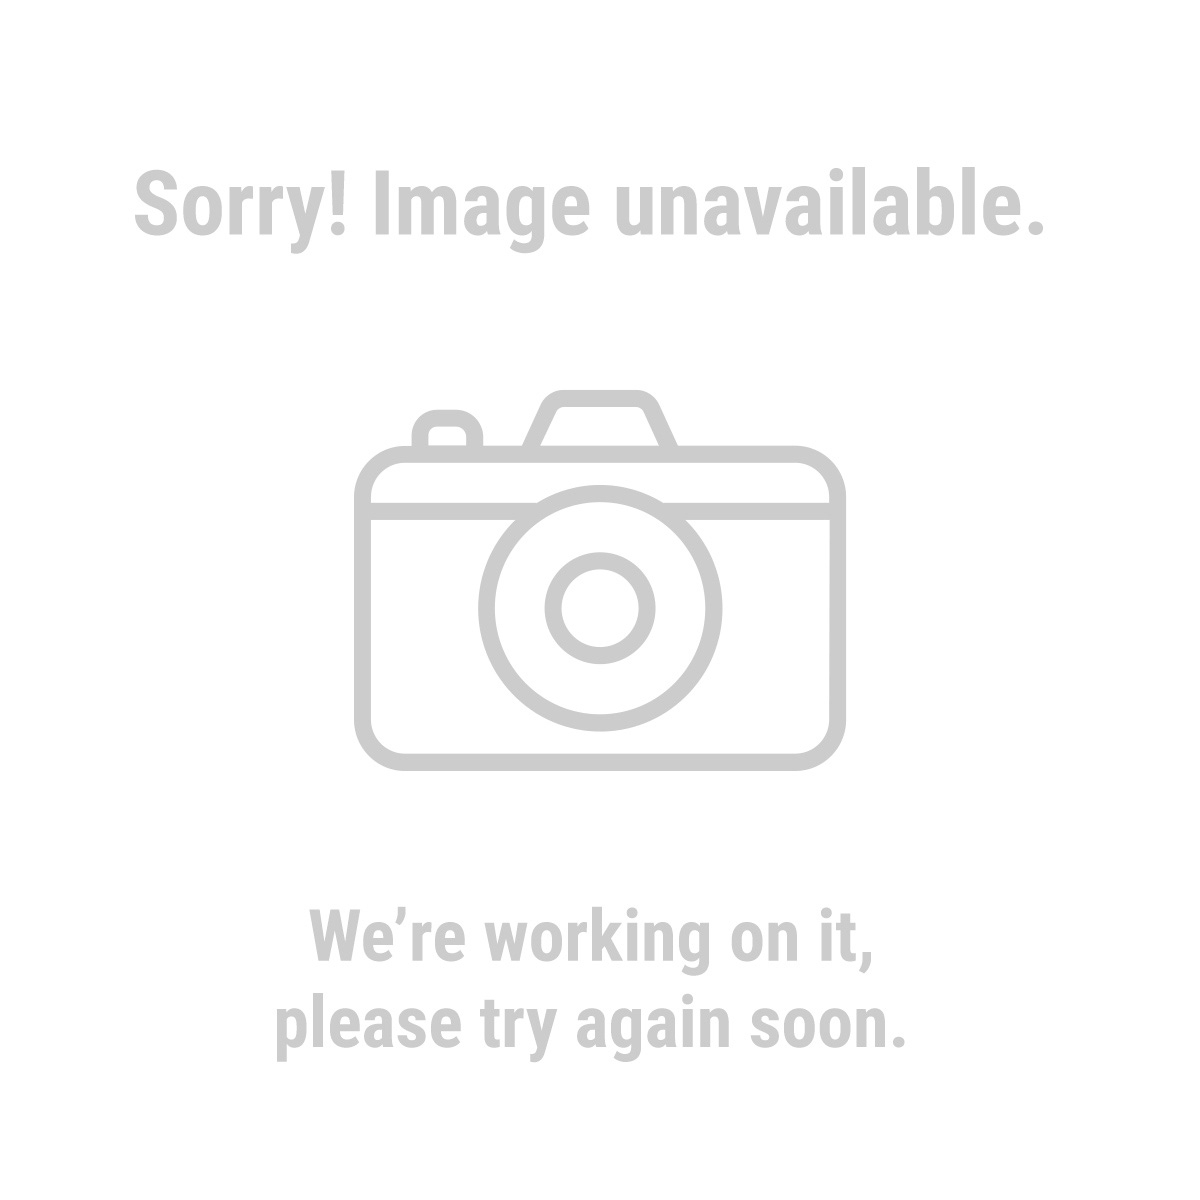 8 Volt Battery Load Tester : Amp v battery load tester